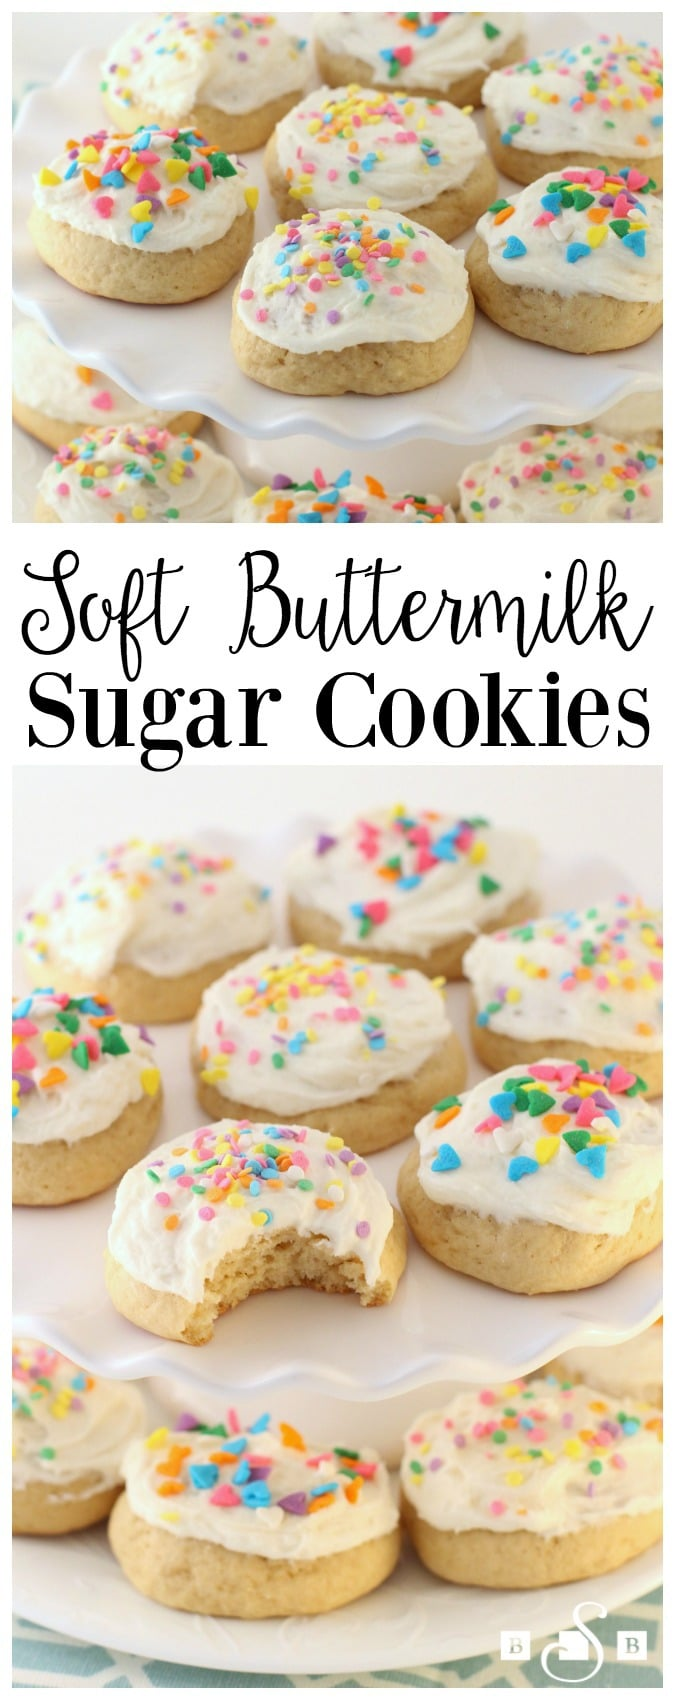 Soft Buttermilk Sugar Cookies - Butter With A Side of Bread